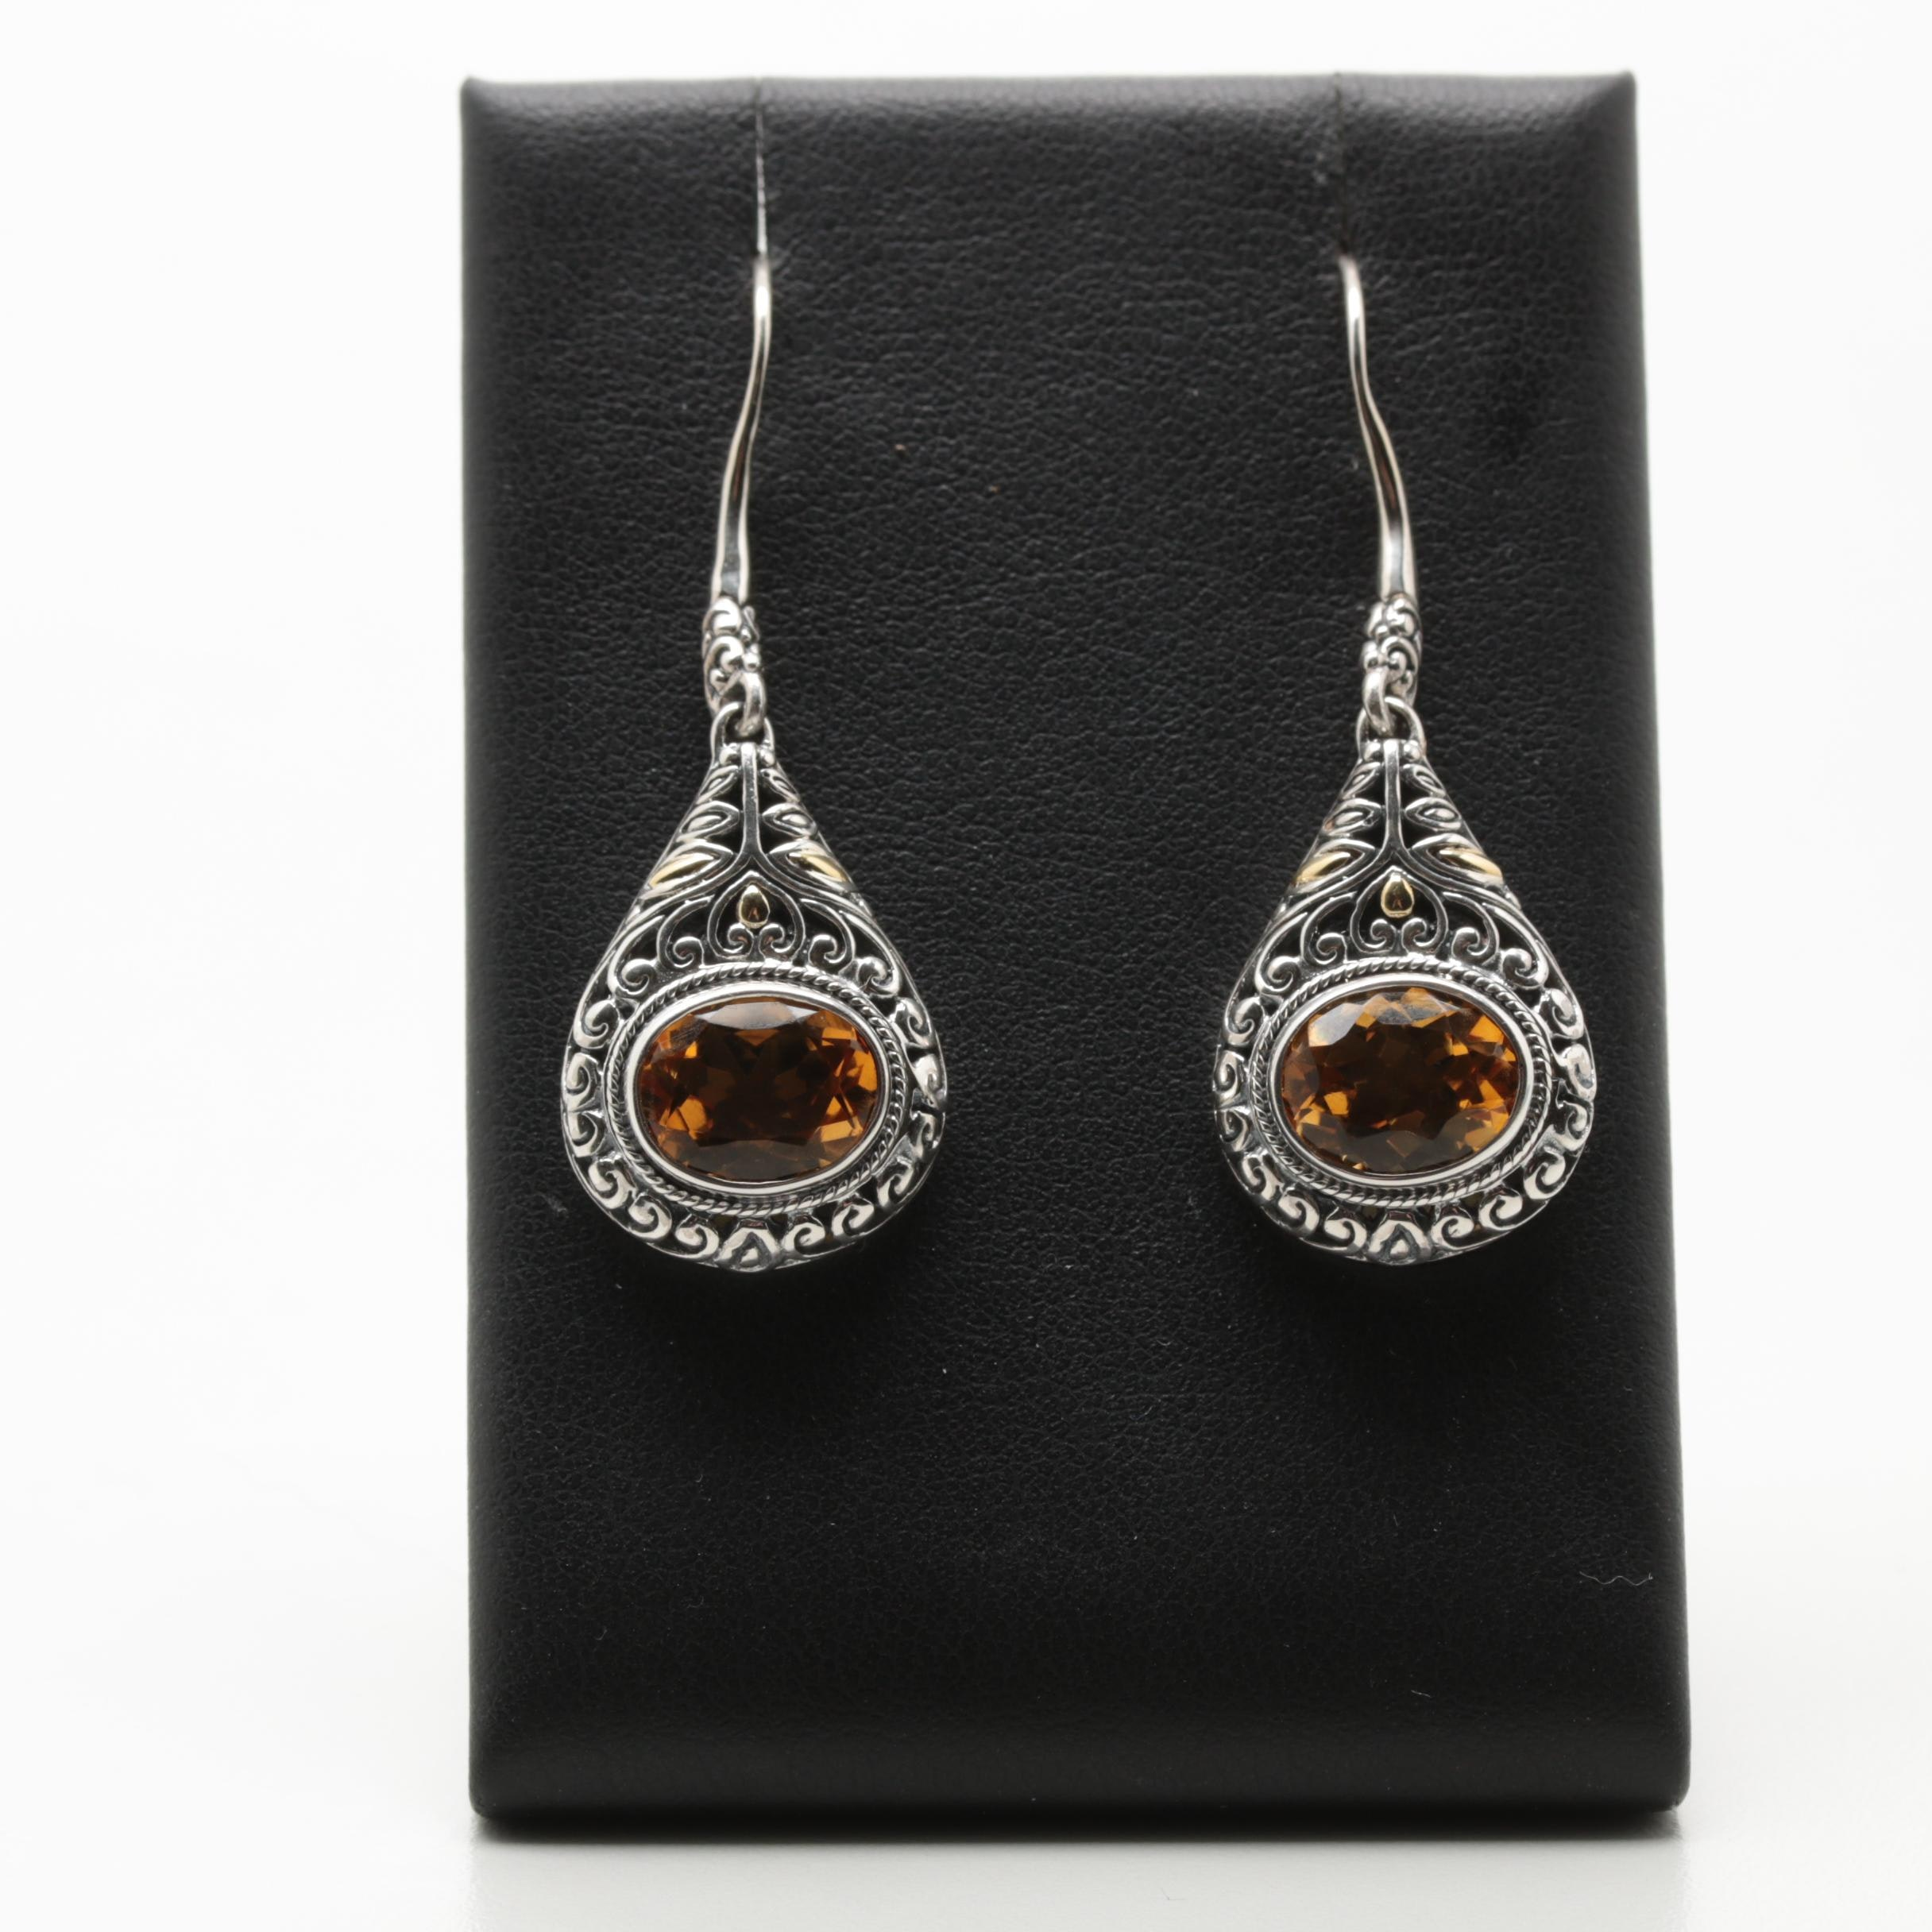 Robert Manse Sterling Silver Citrine Earrings with 18K Yellow Gold Accents